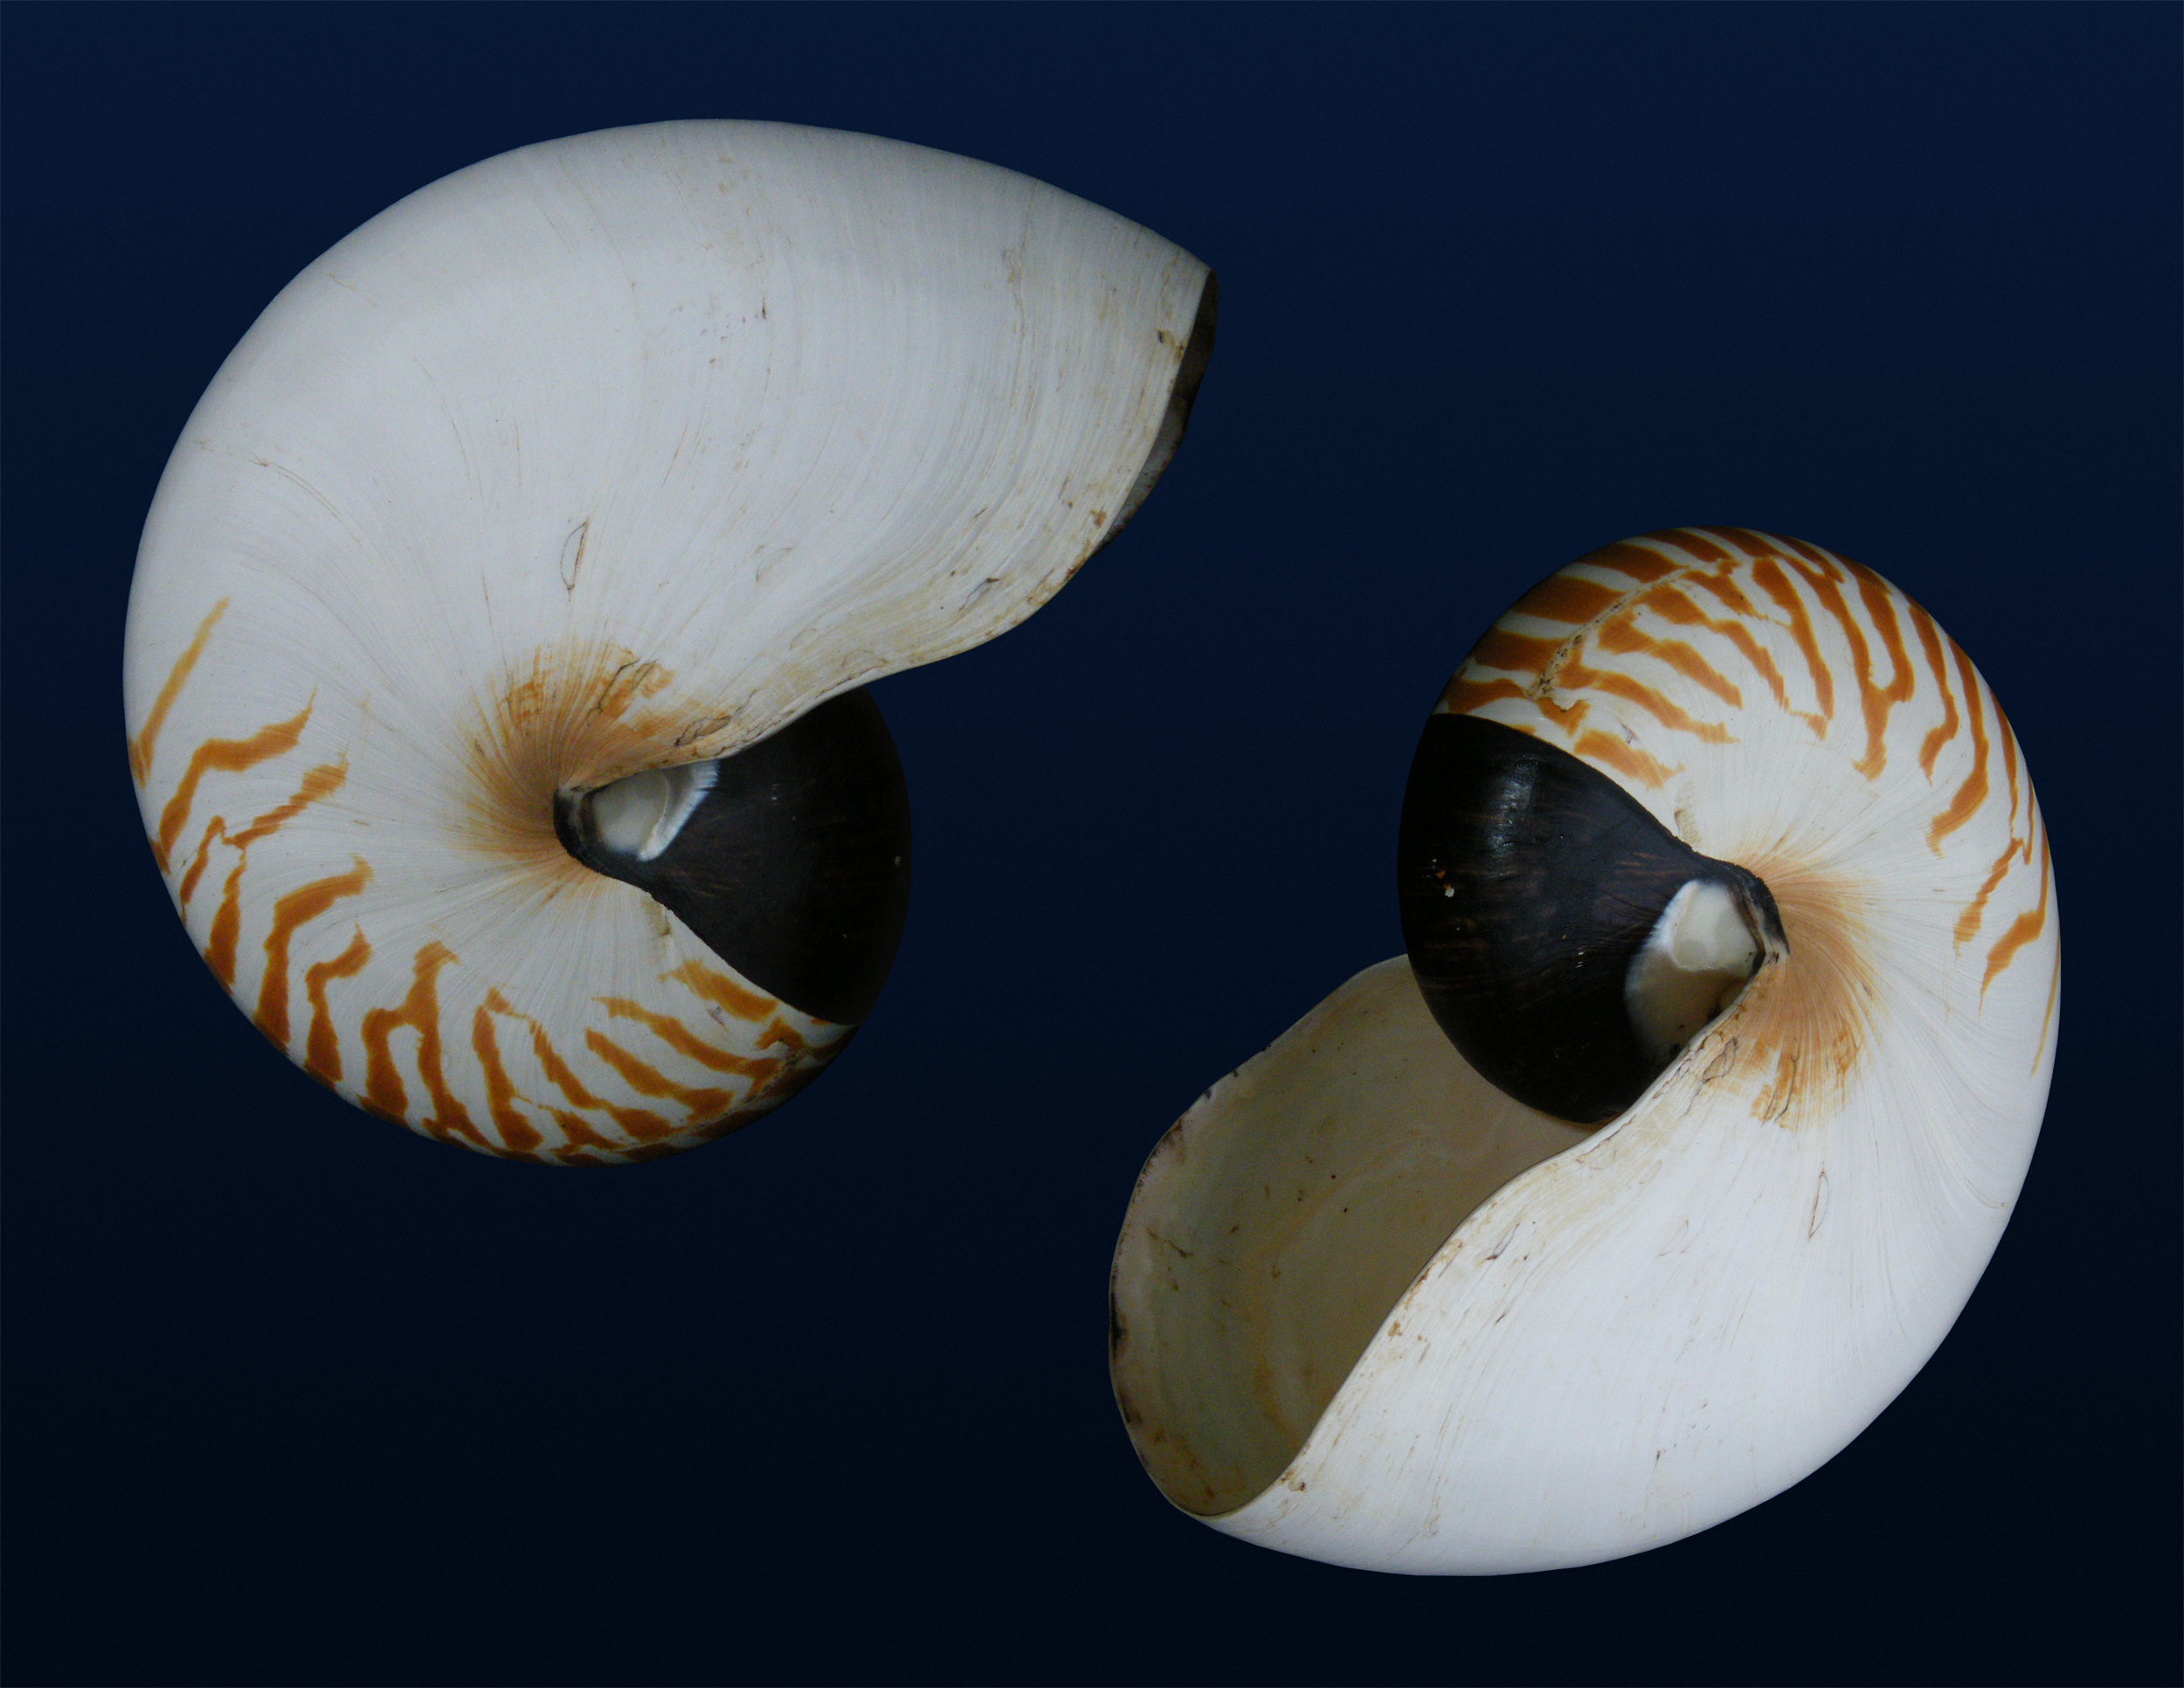 Image of chambered nautilus